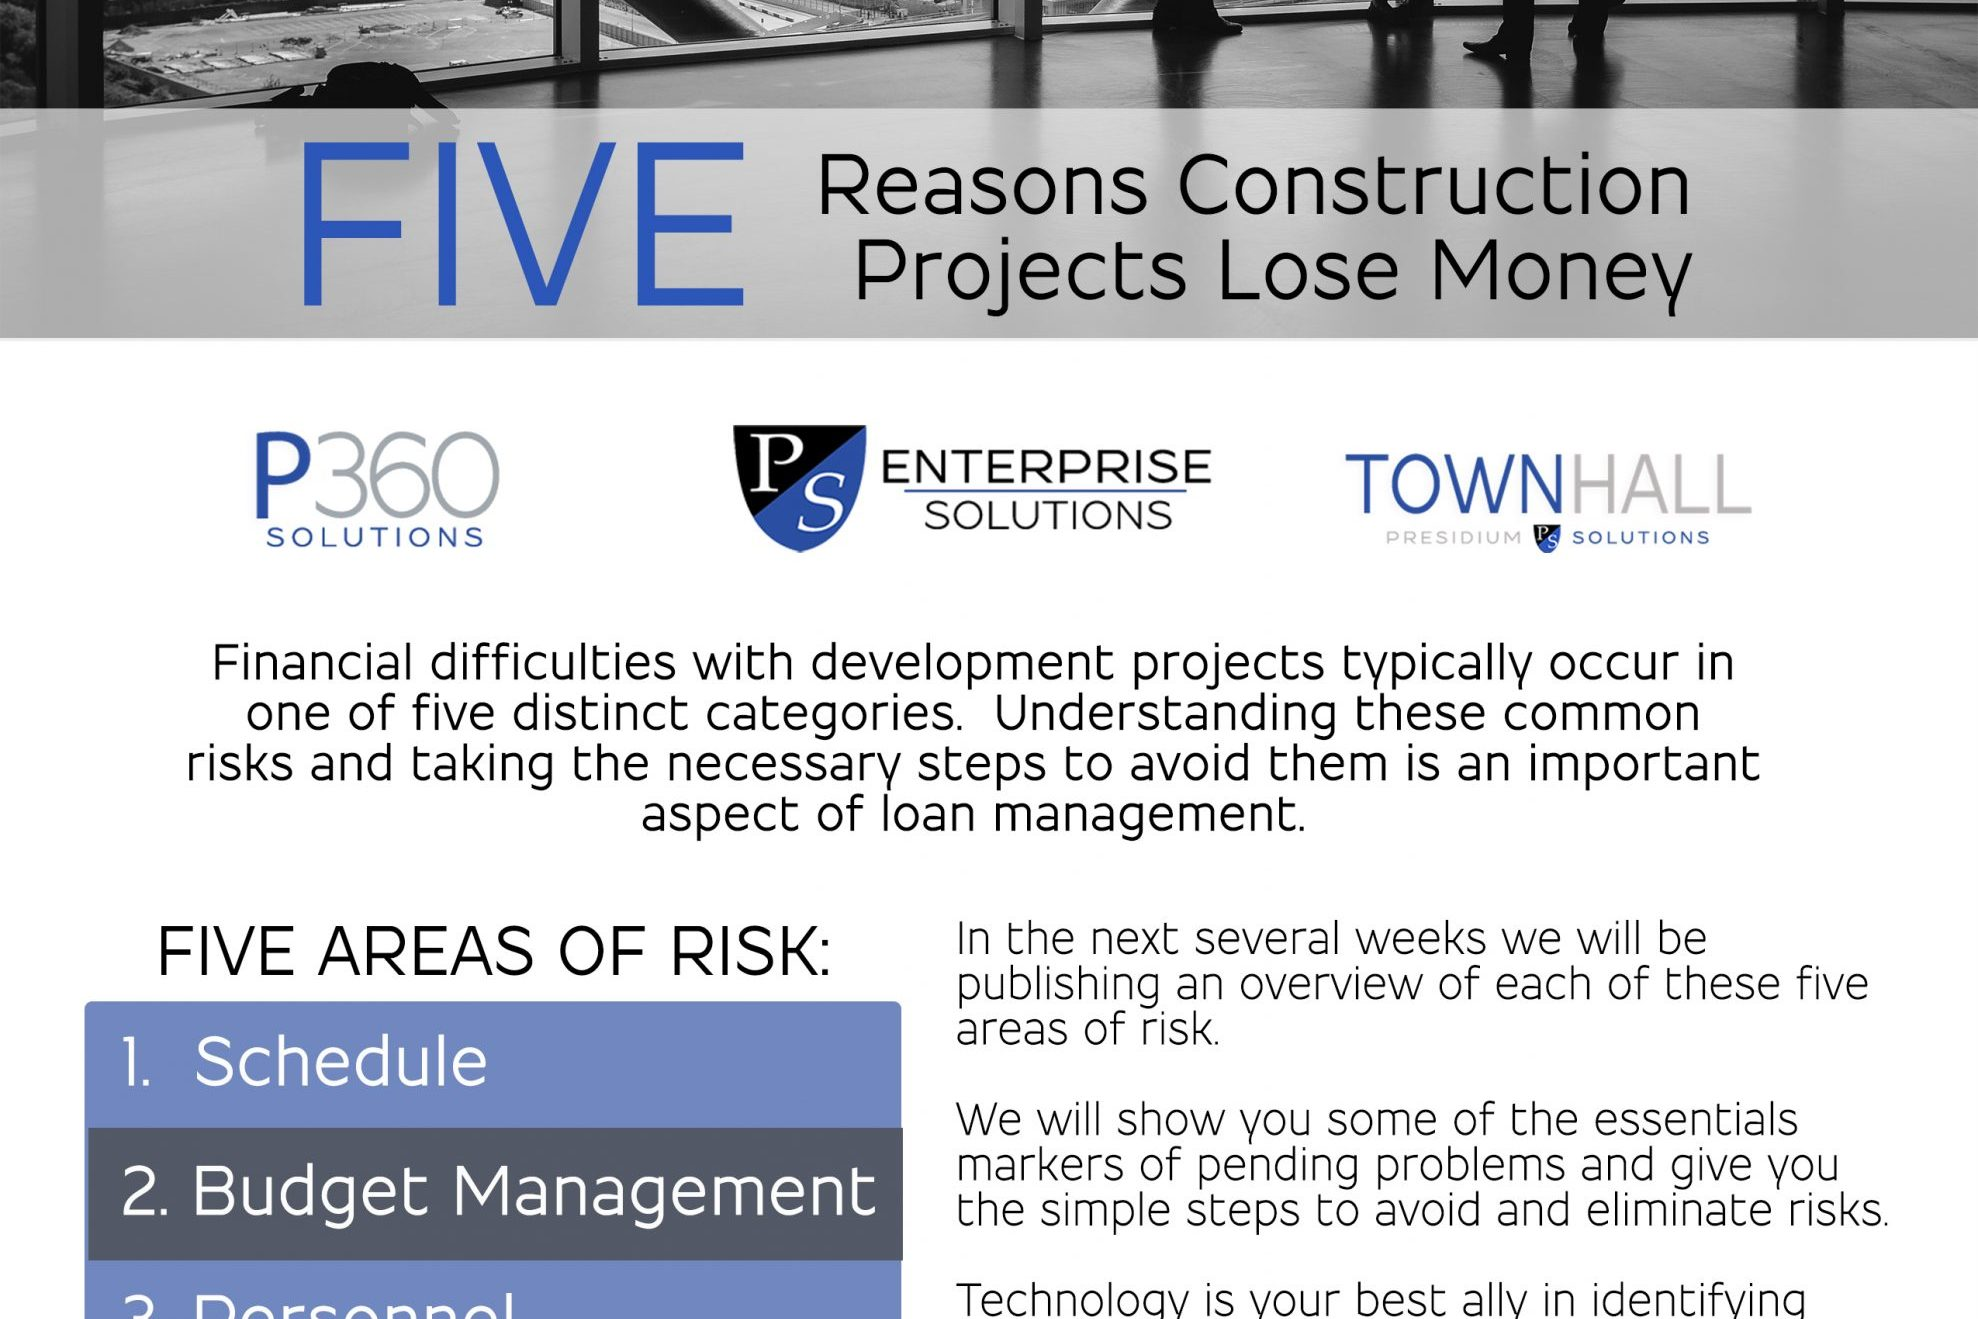 5 Reasons Construction Projects Lose Money